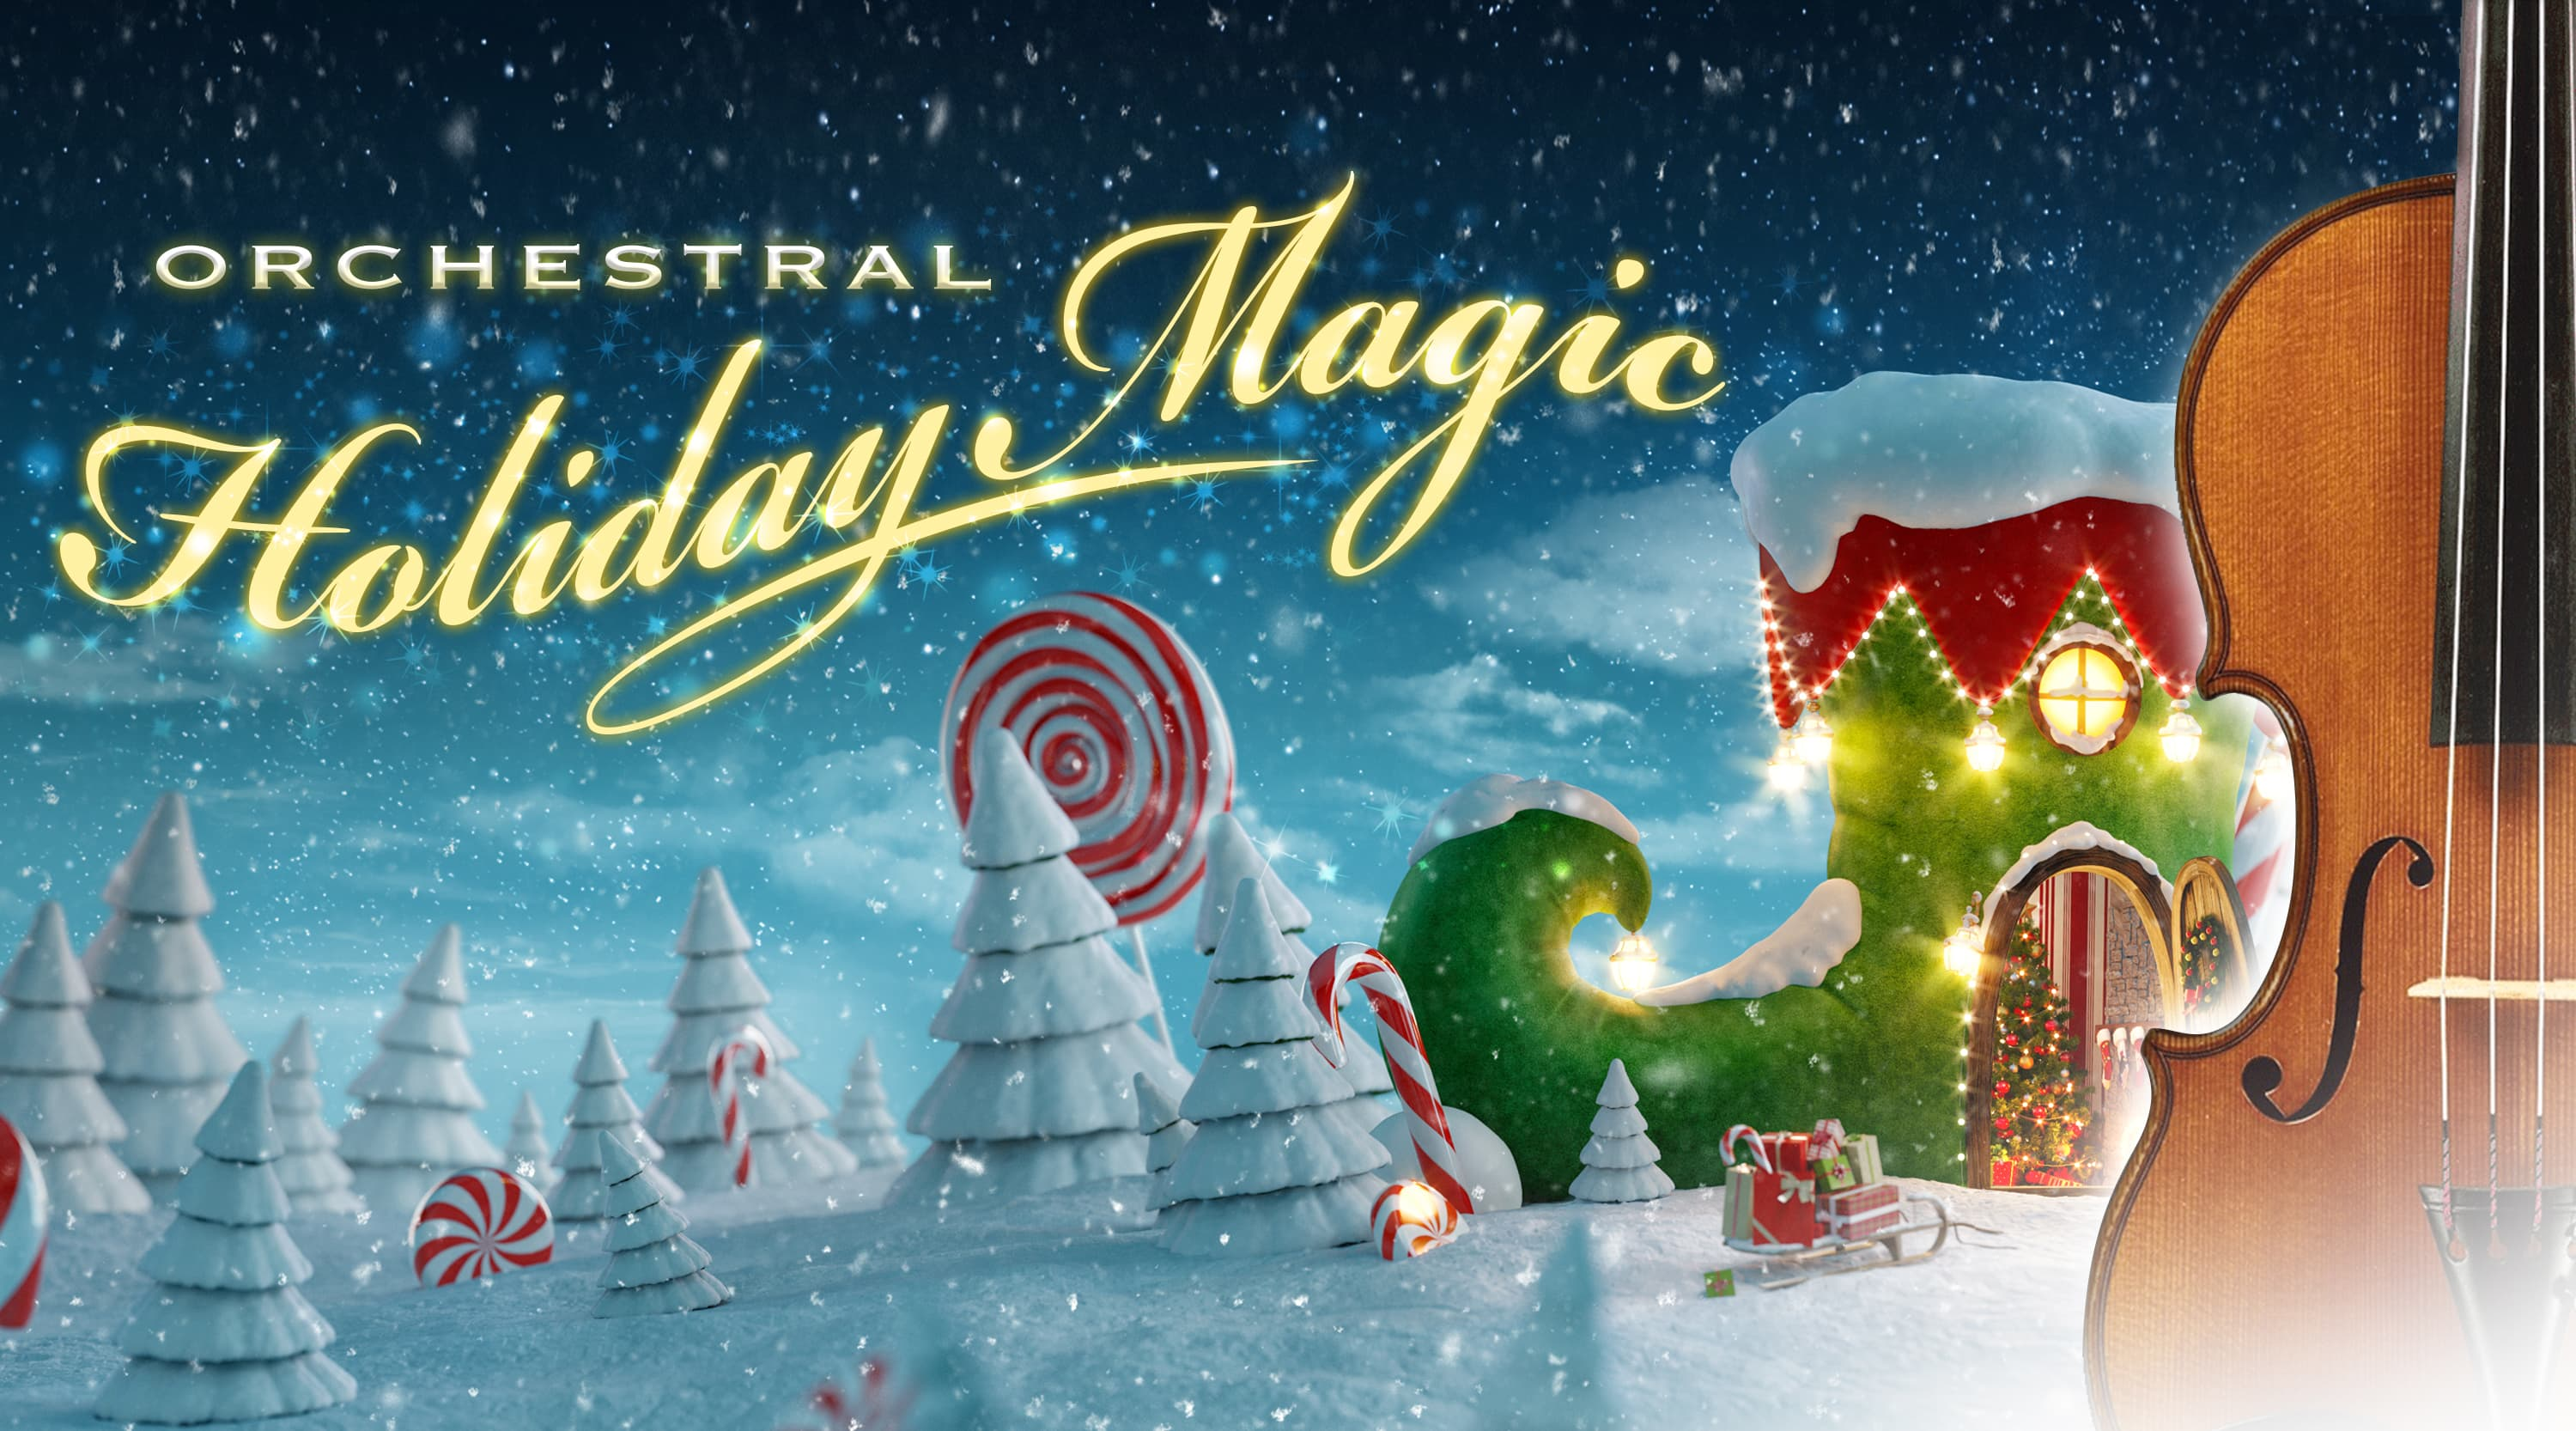 Orchestral Holiday Magic